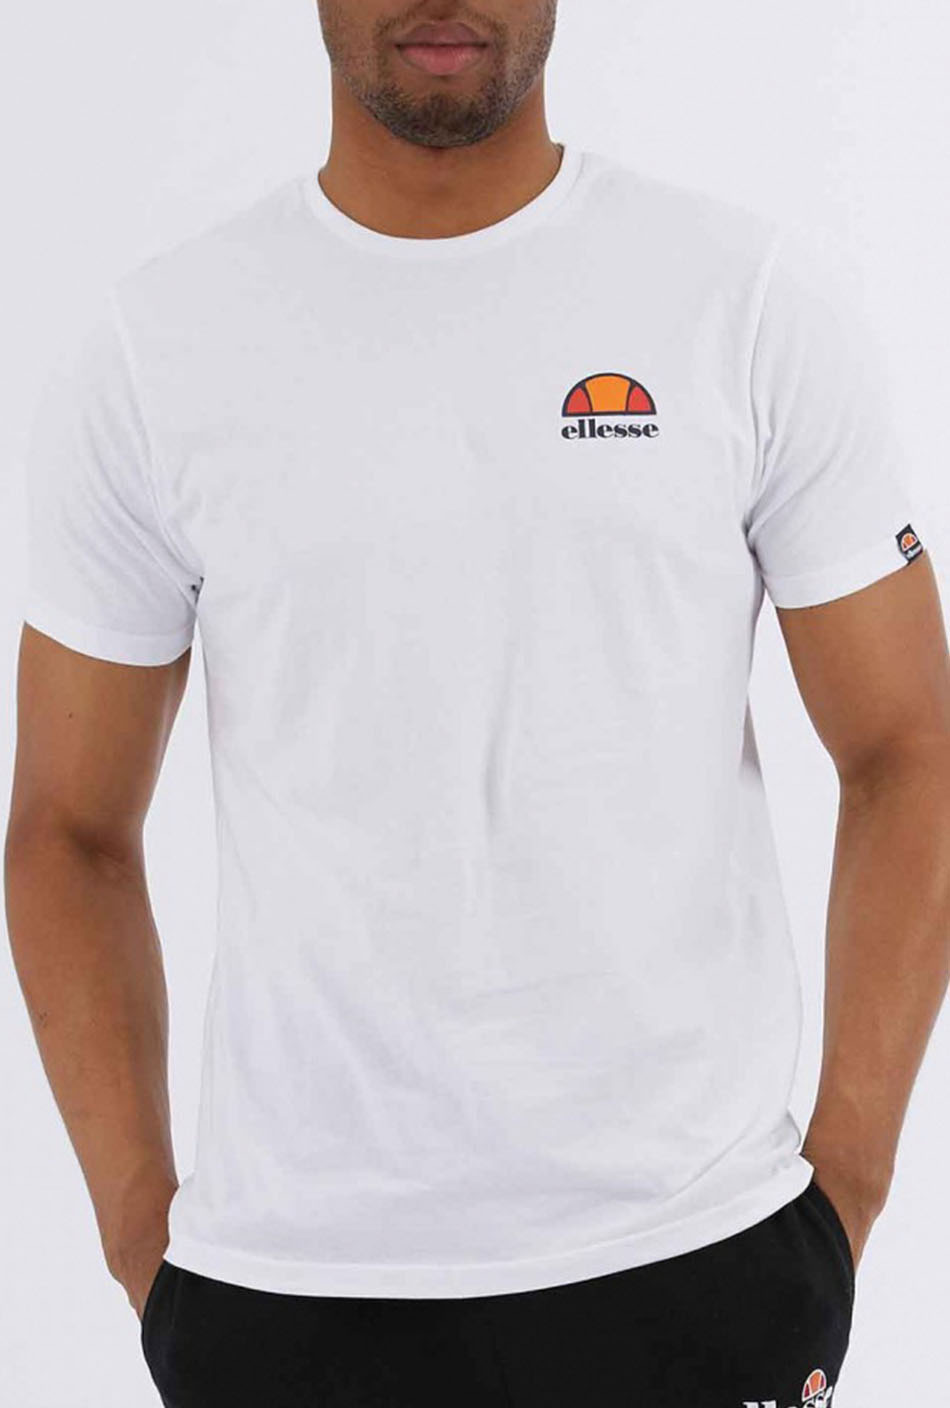 Ellesse Canaletto White T-Shirt